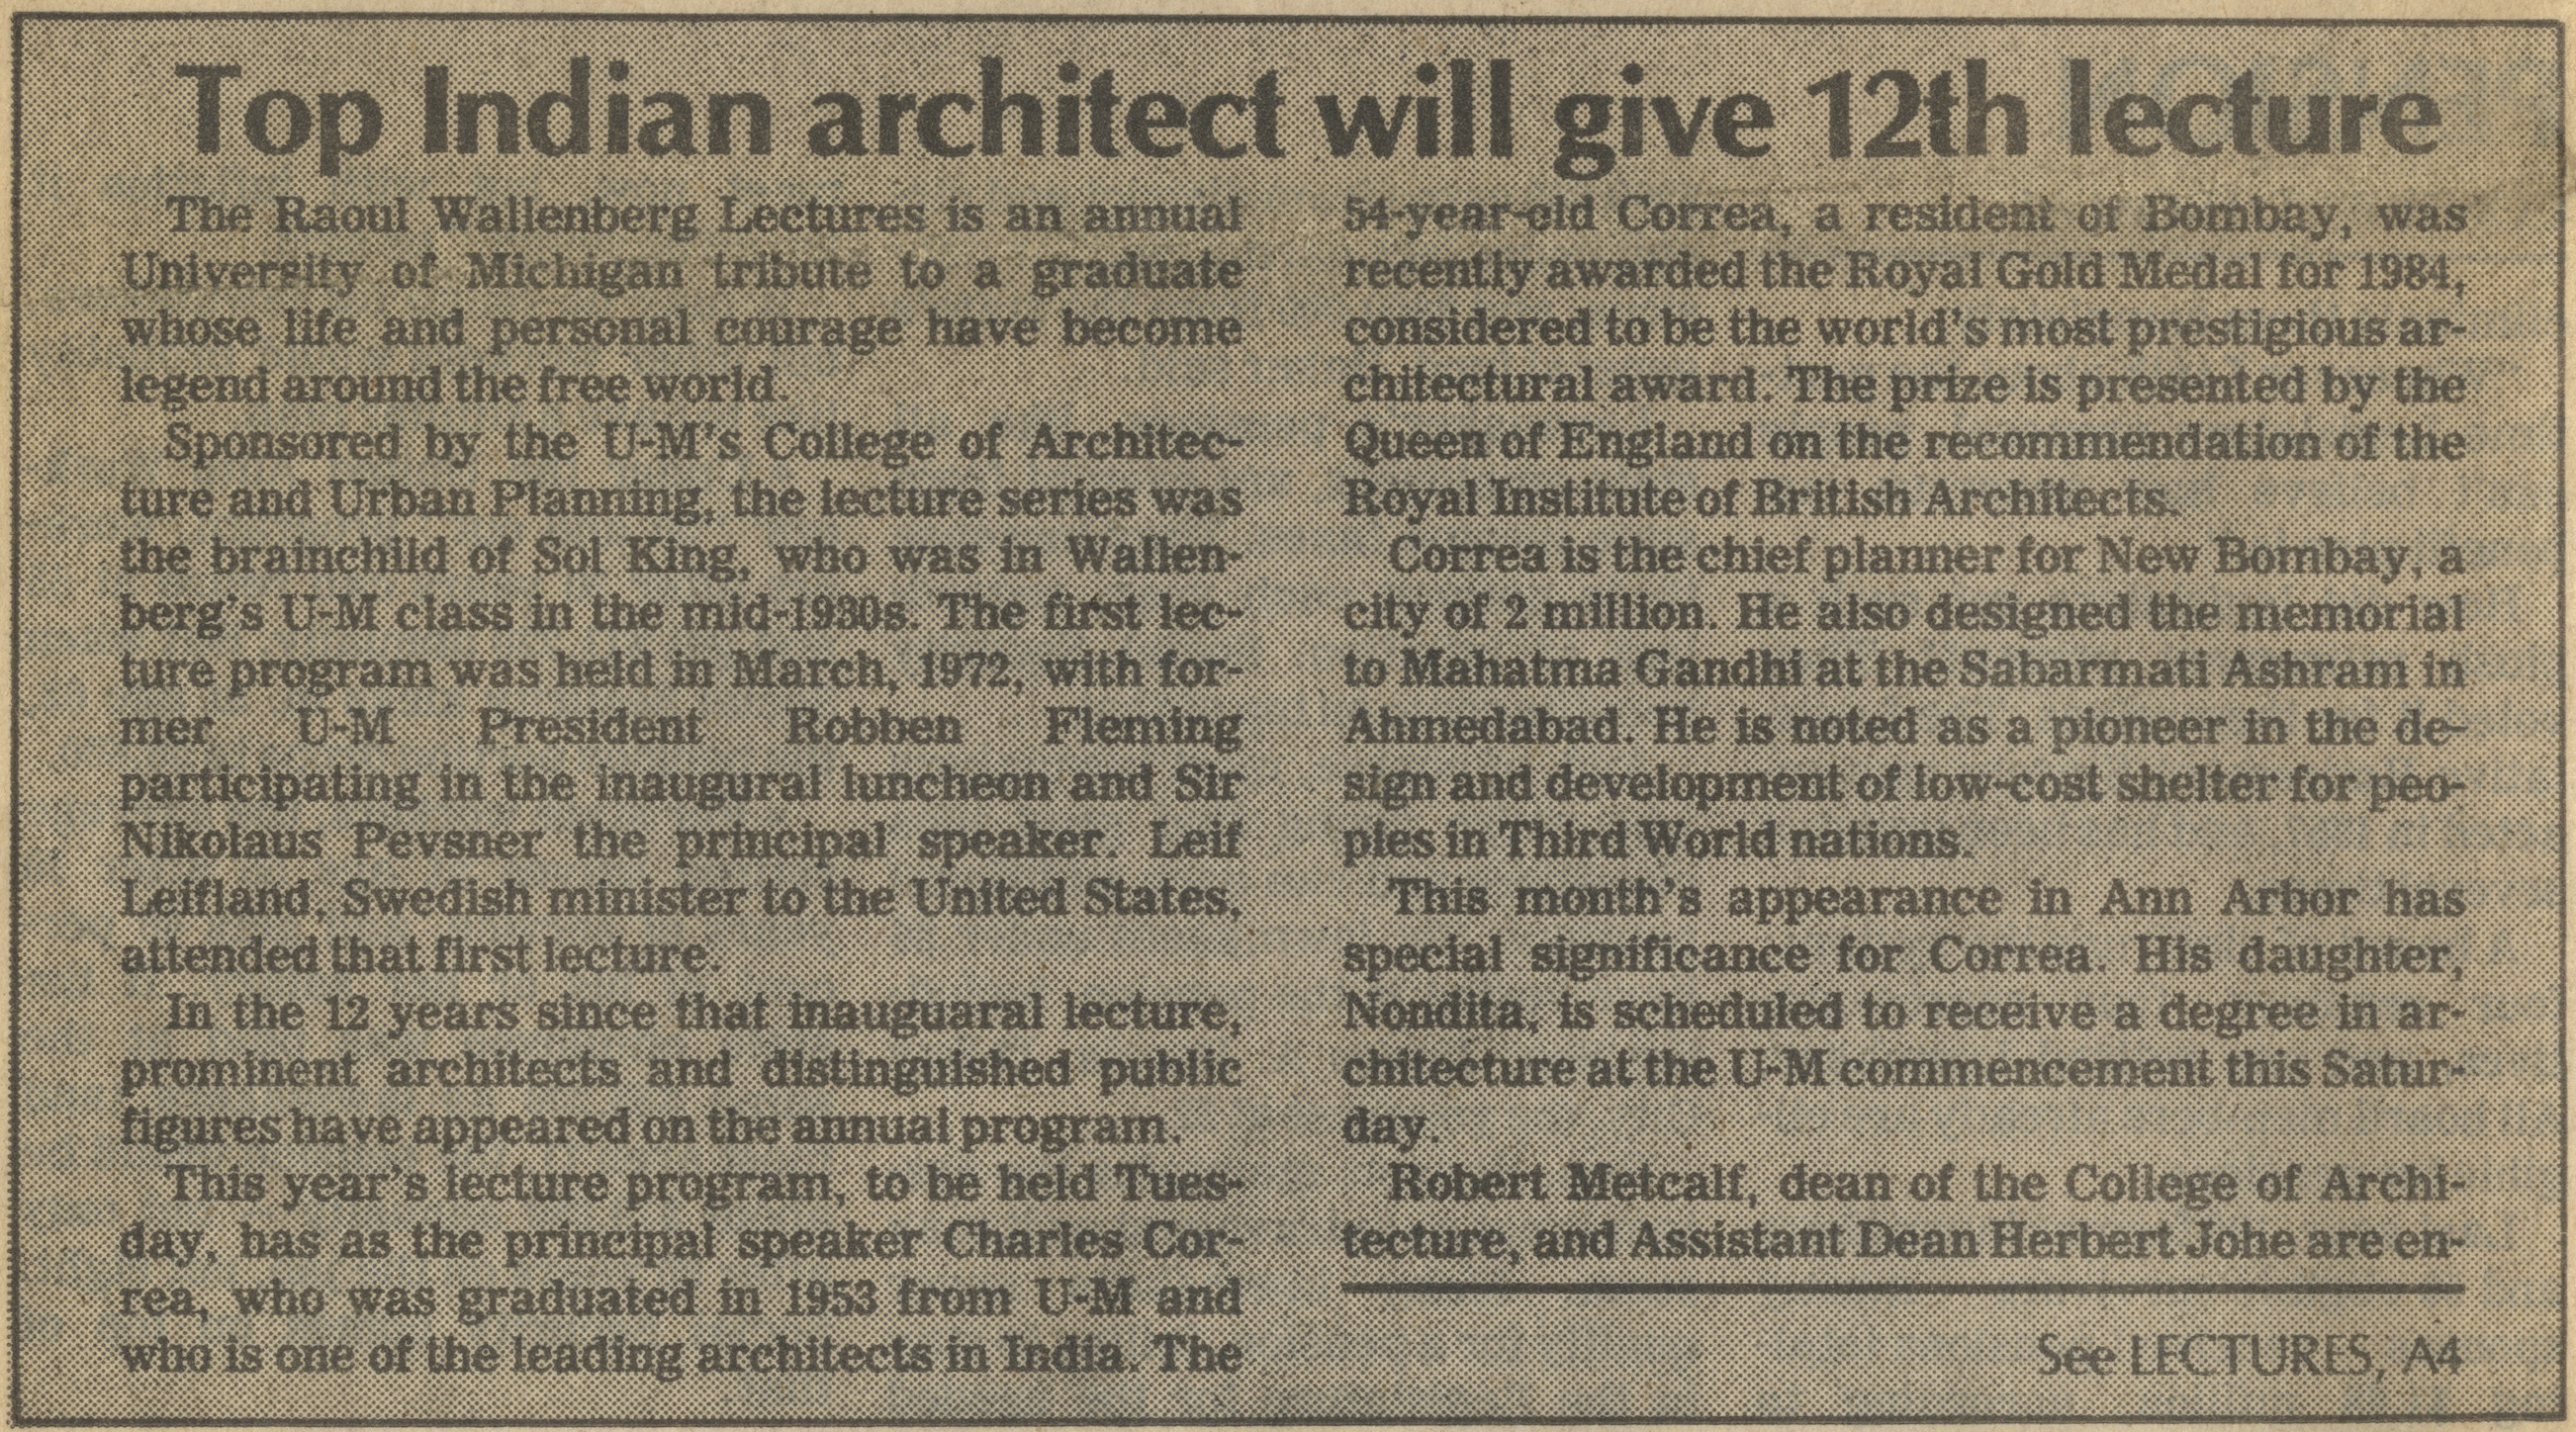 Top Indian Architect Will Give 12th Lecture image